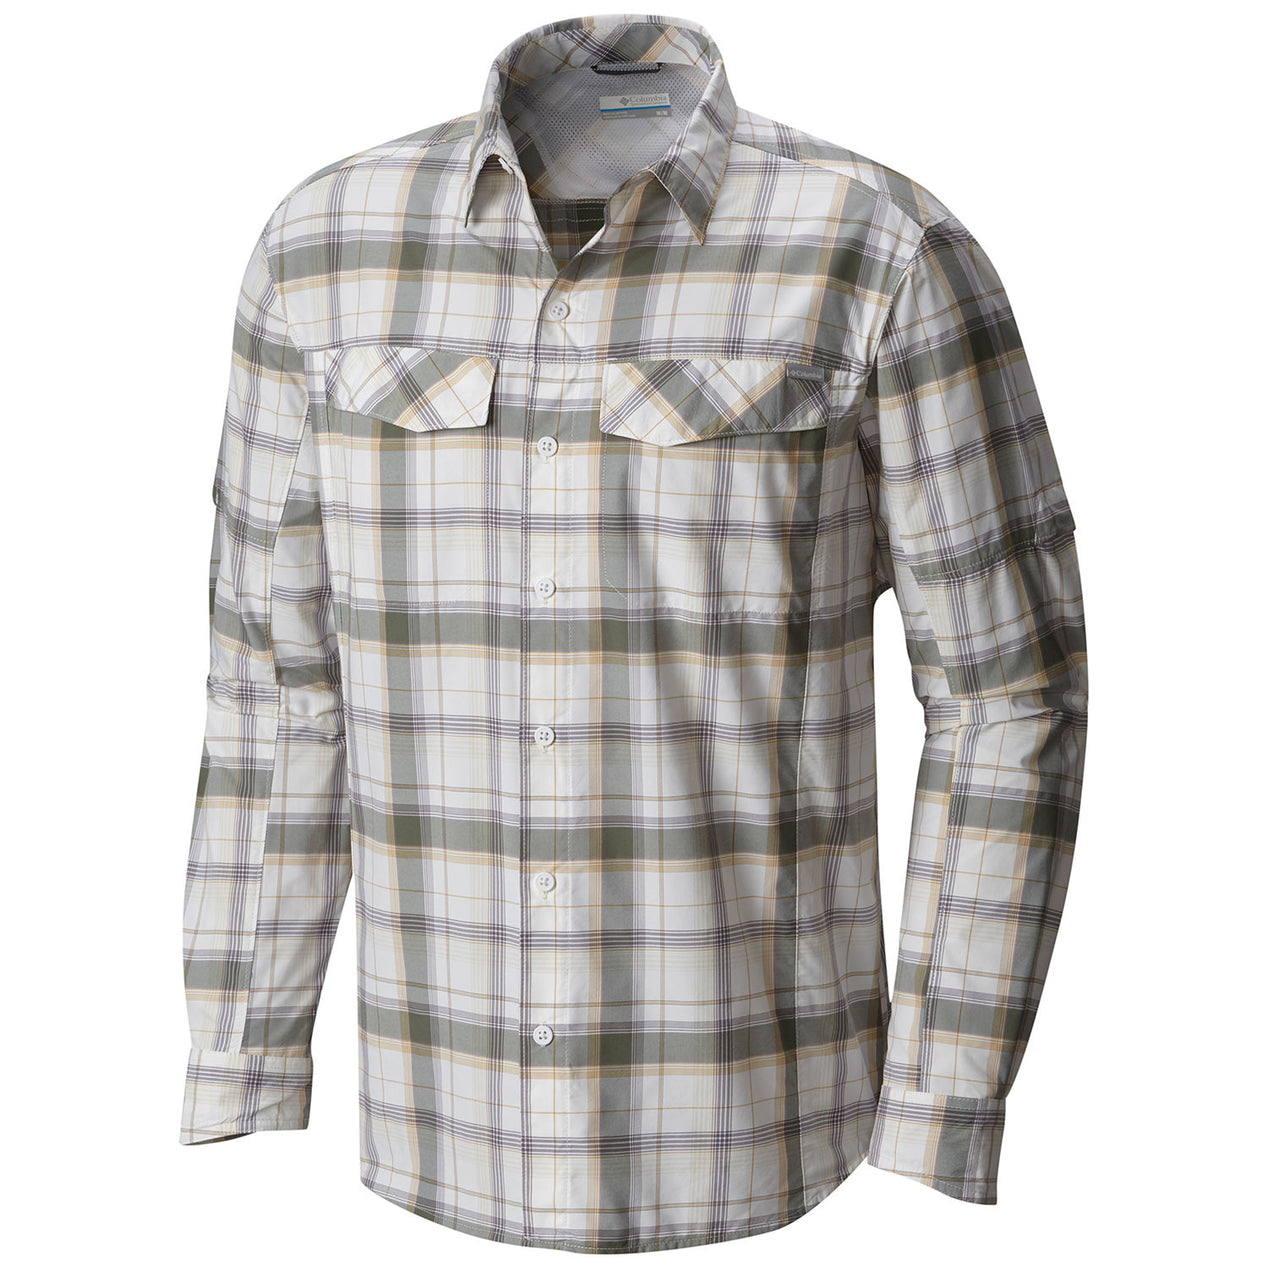 da967521de7 Columbia Men's Silver Ridge Plaid Long Sleeve Shirt | Altitude Sports